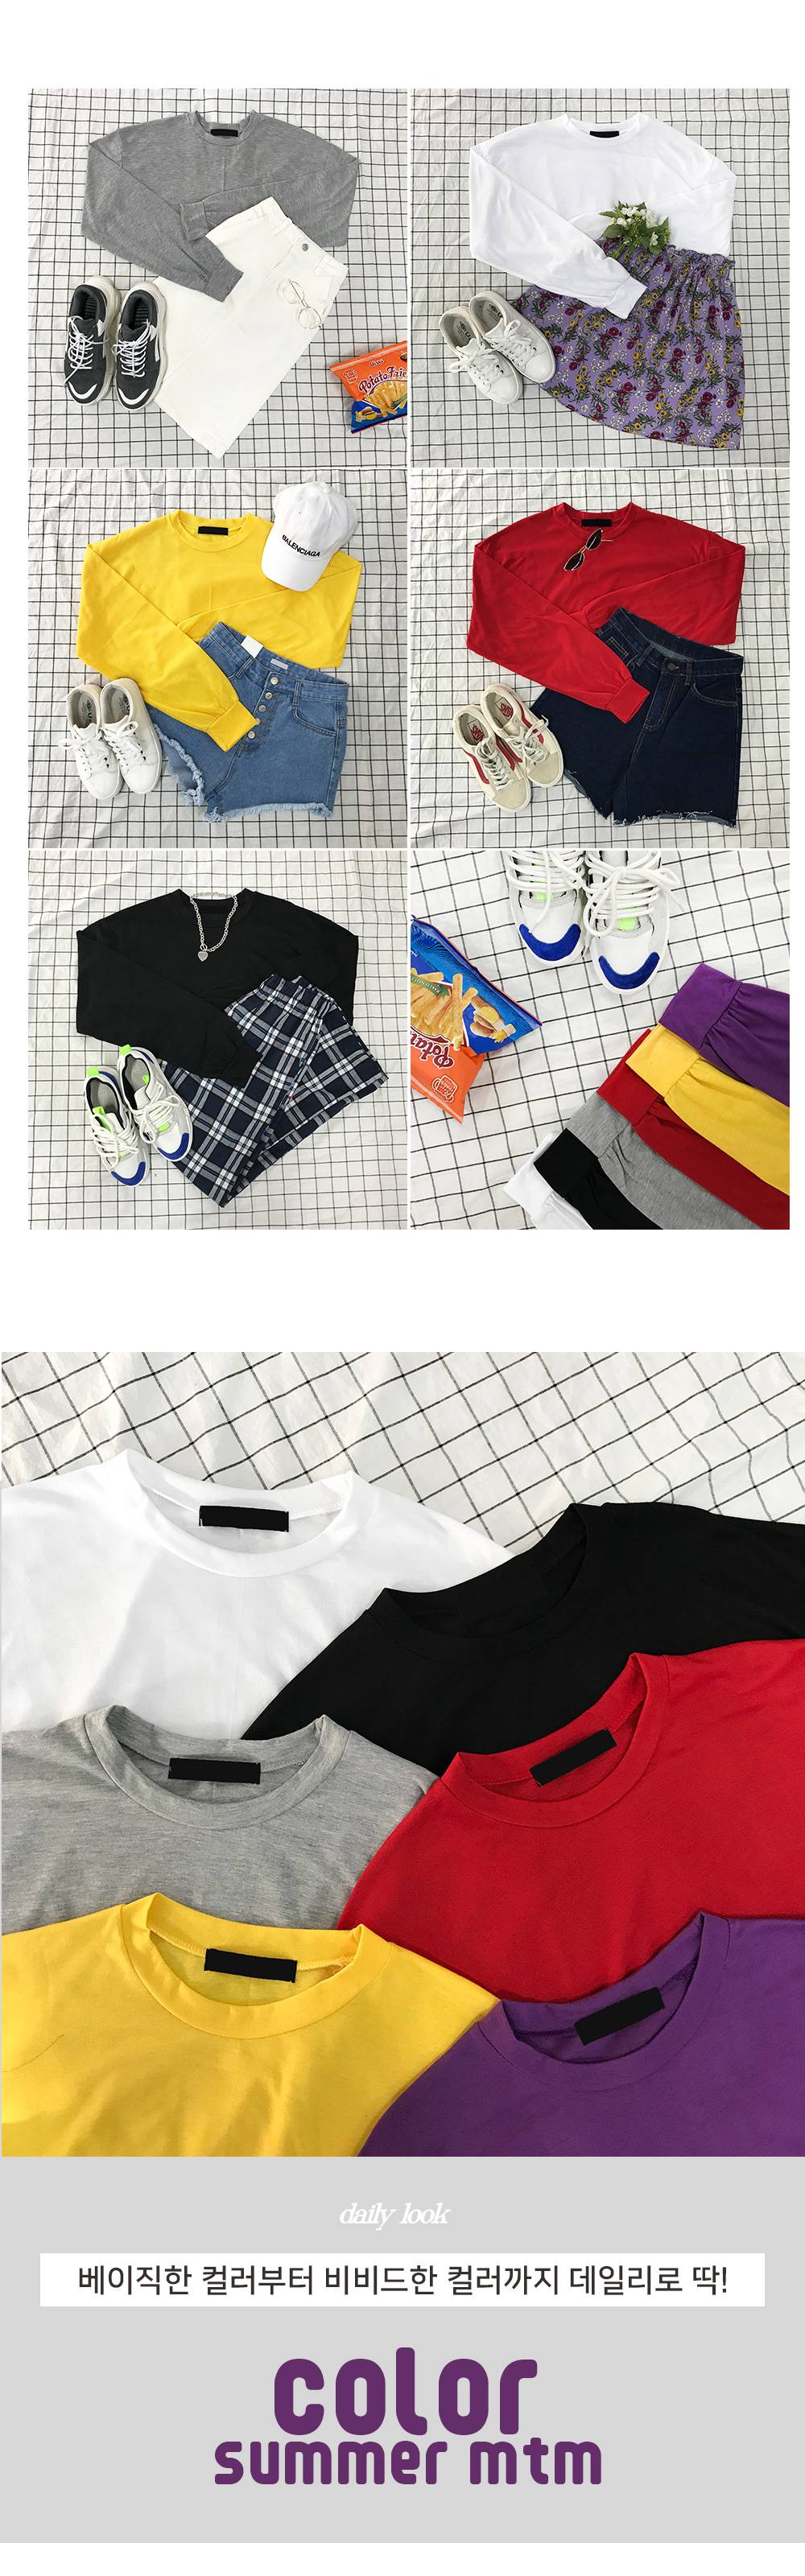 Color summer man-to-man